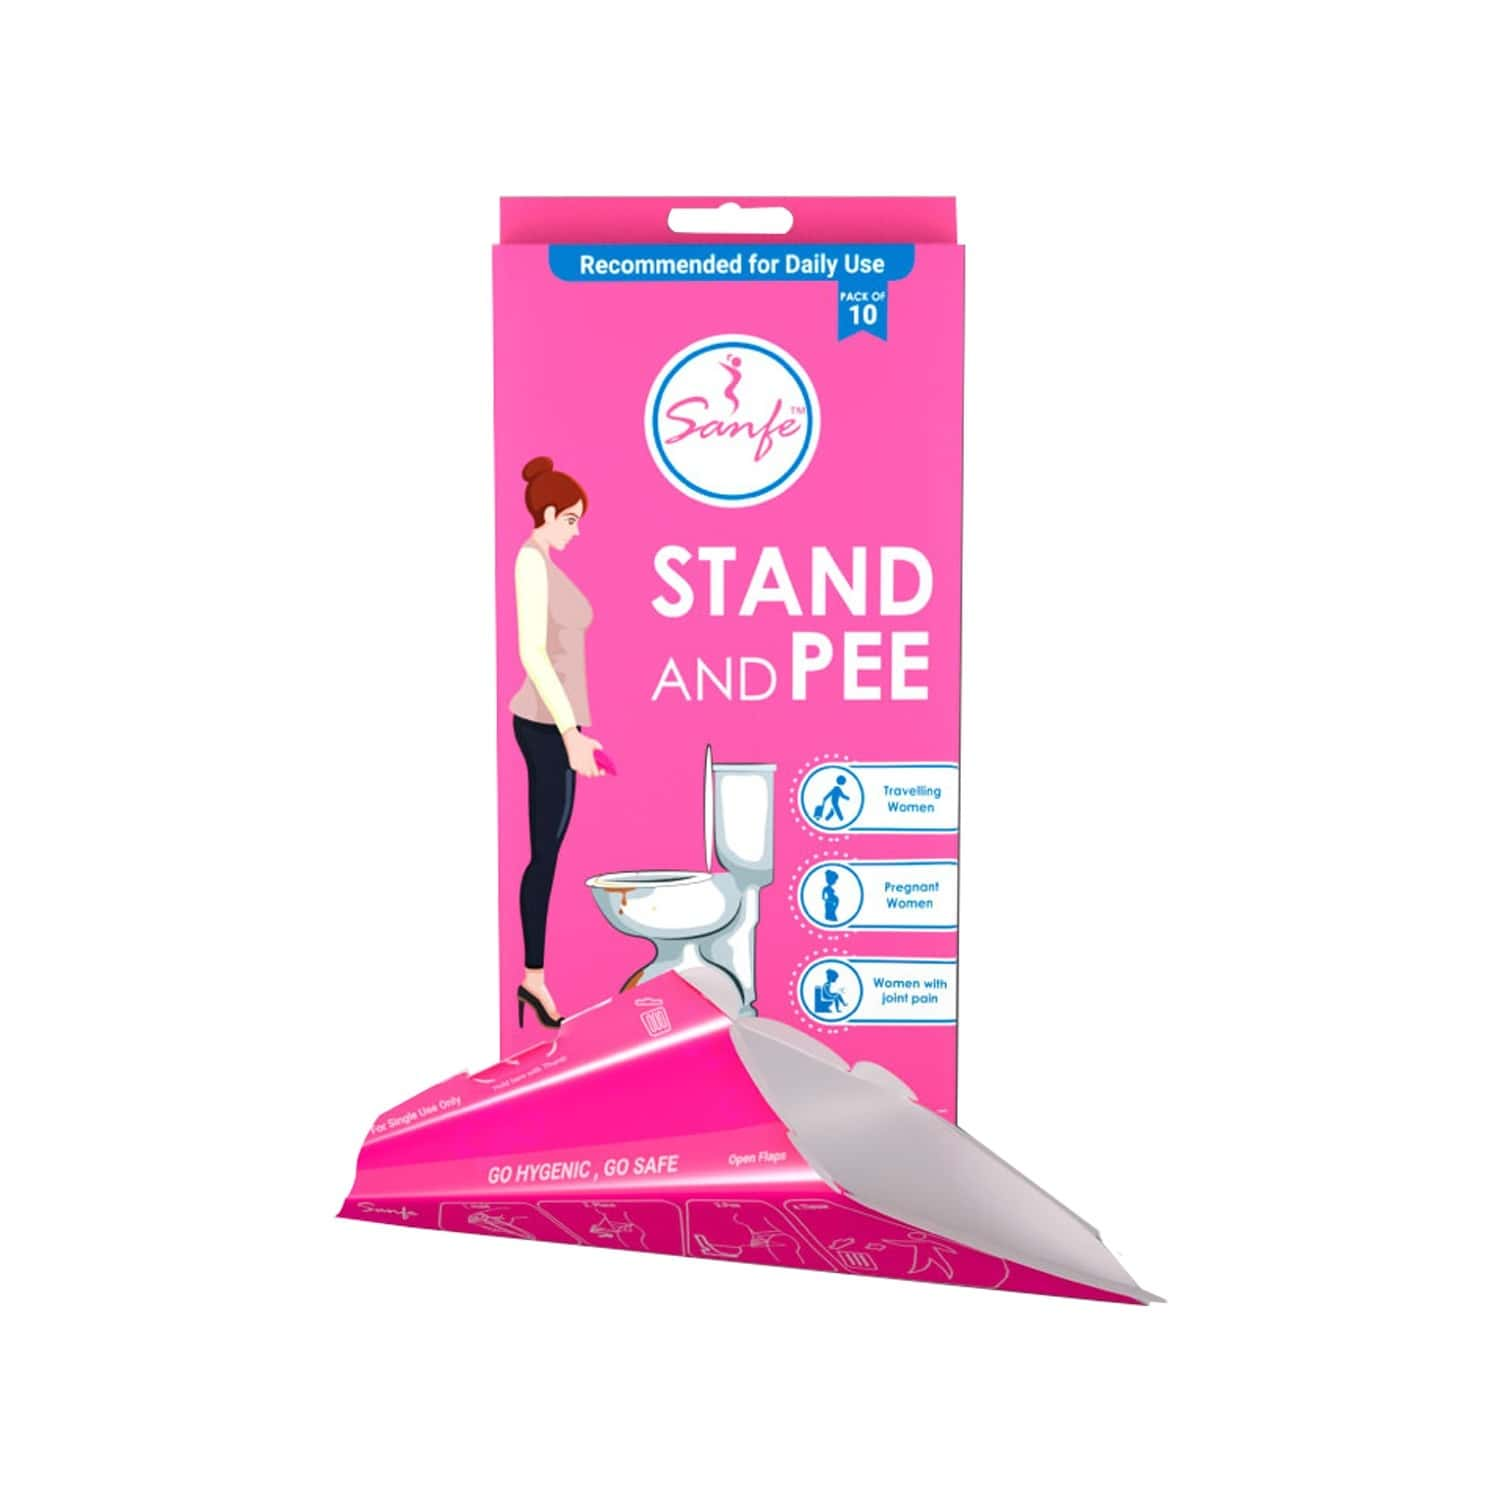 Sanfe Stand And Pee Disposable Female Urination Funnel Packet Of 50